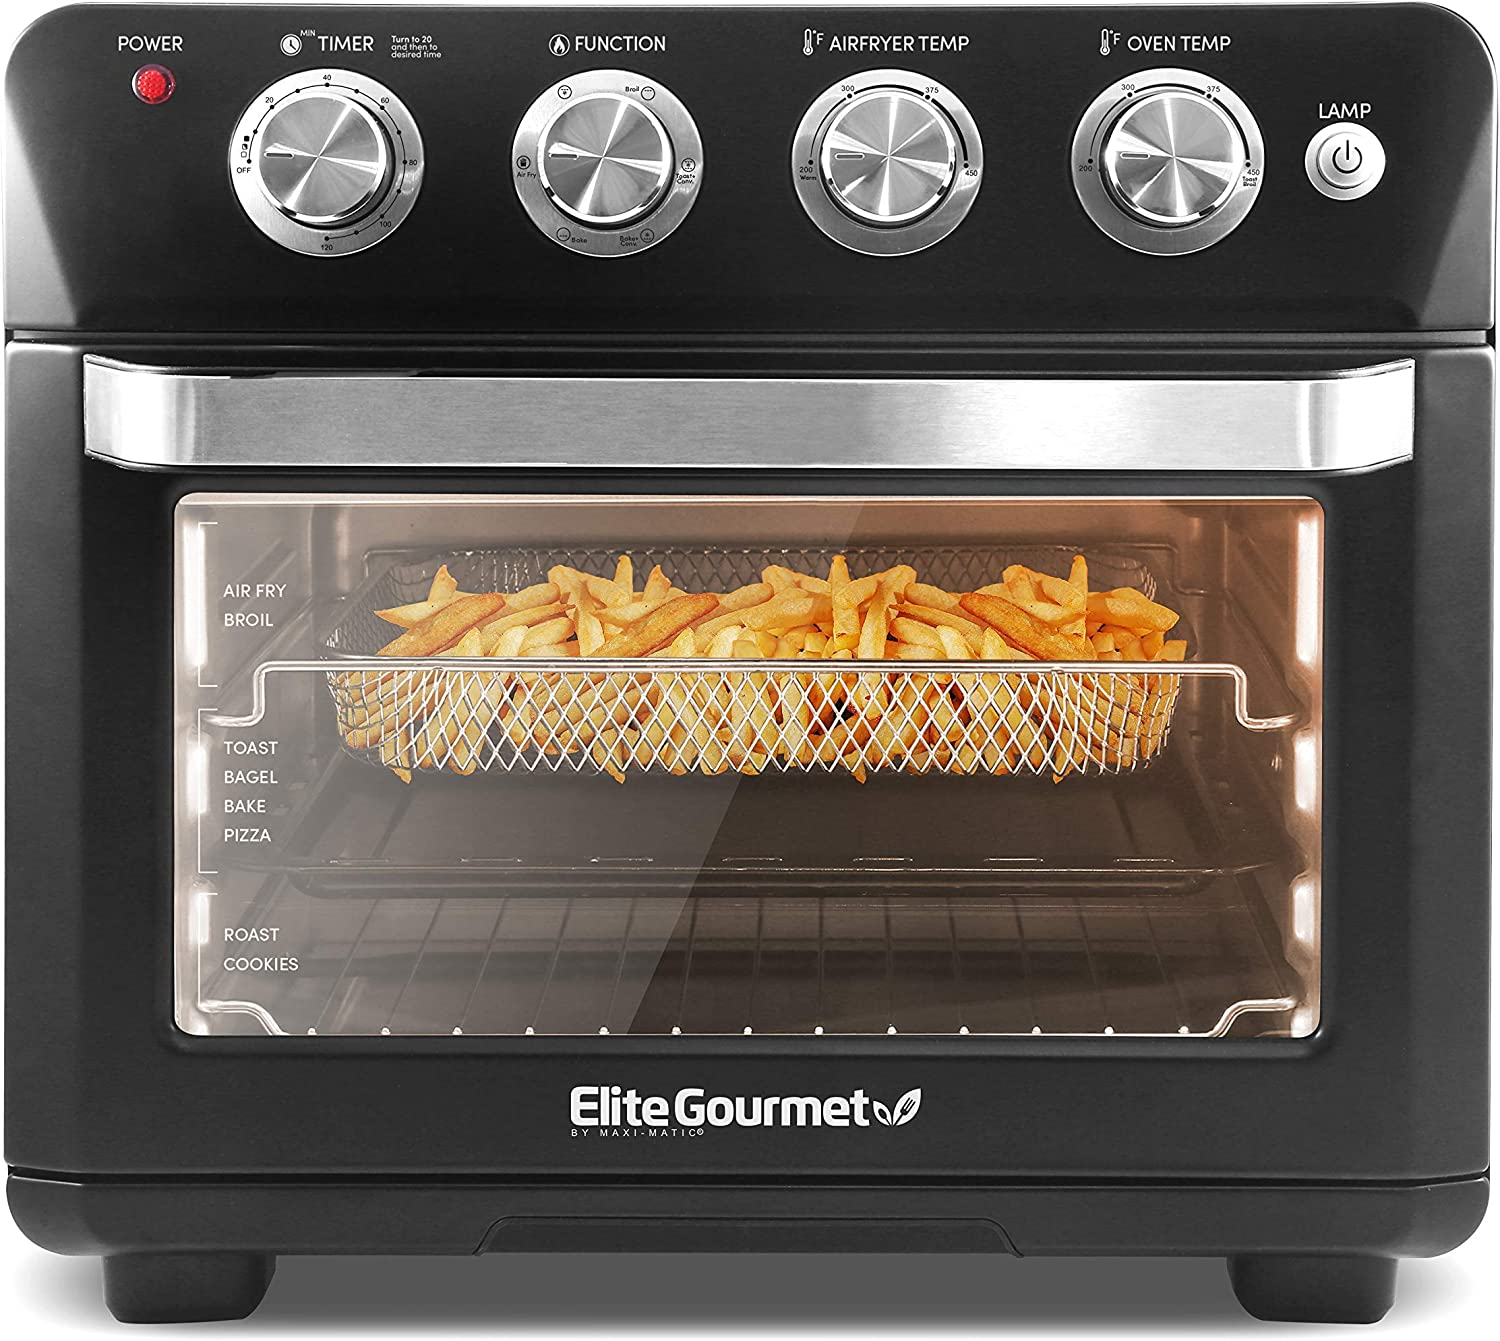 Elite Gourmet EAF9100 Maxi-Matic Electric 25L Air Fryer Oven, 1640 Watts Oil-Less Convection Oven 12